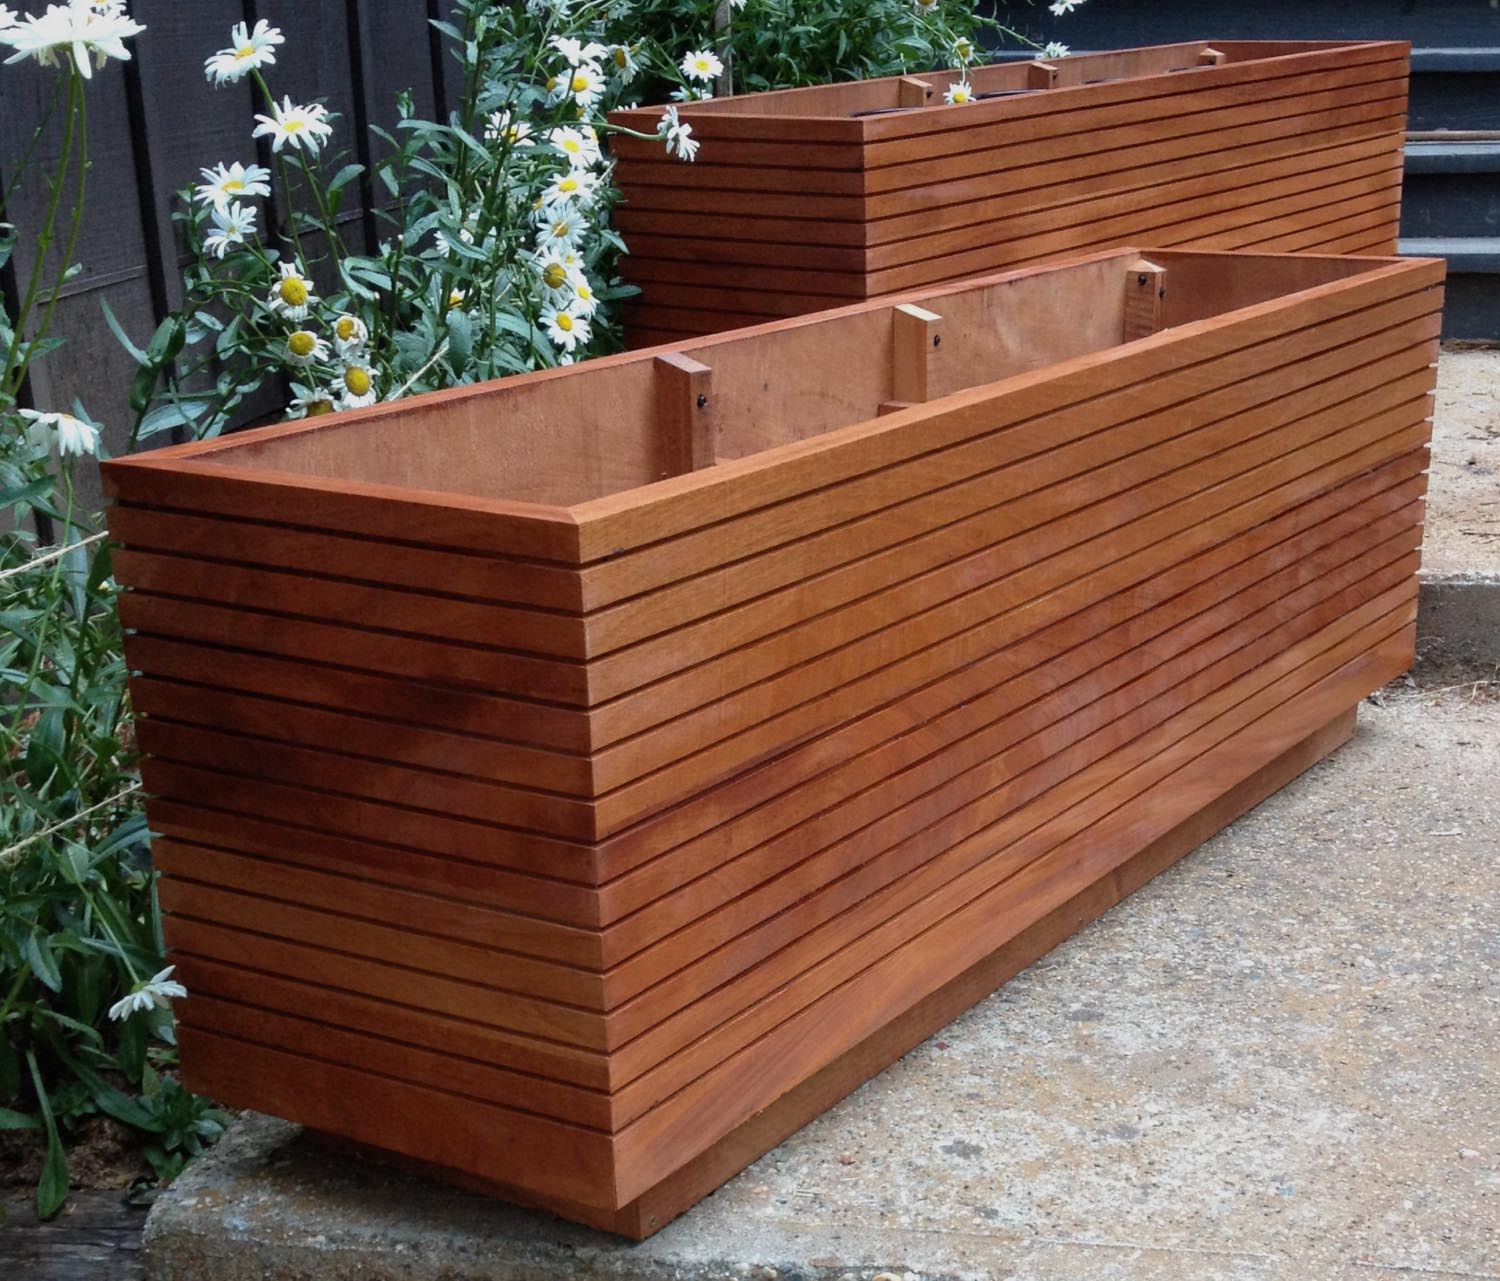 Rectangular wooden planter boxes garden design ideas for Planter box garden designs